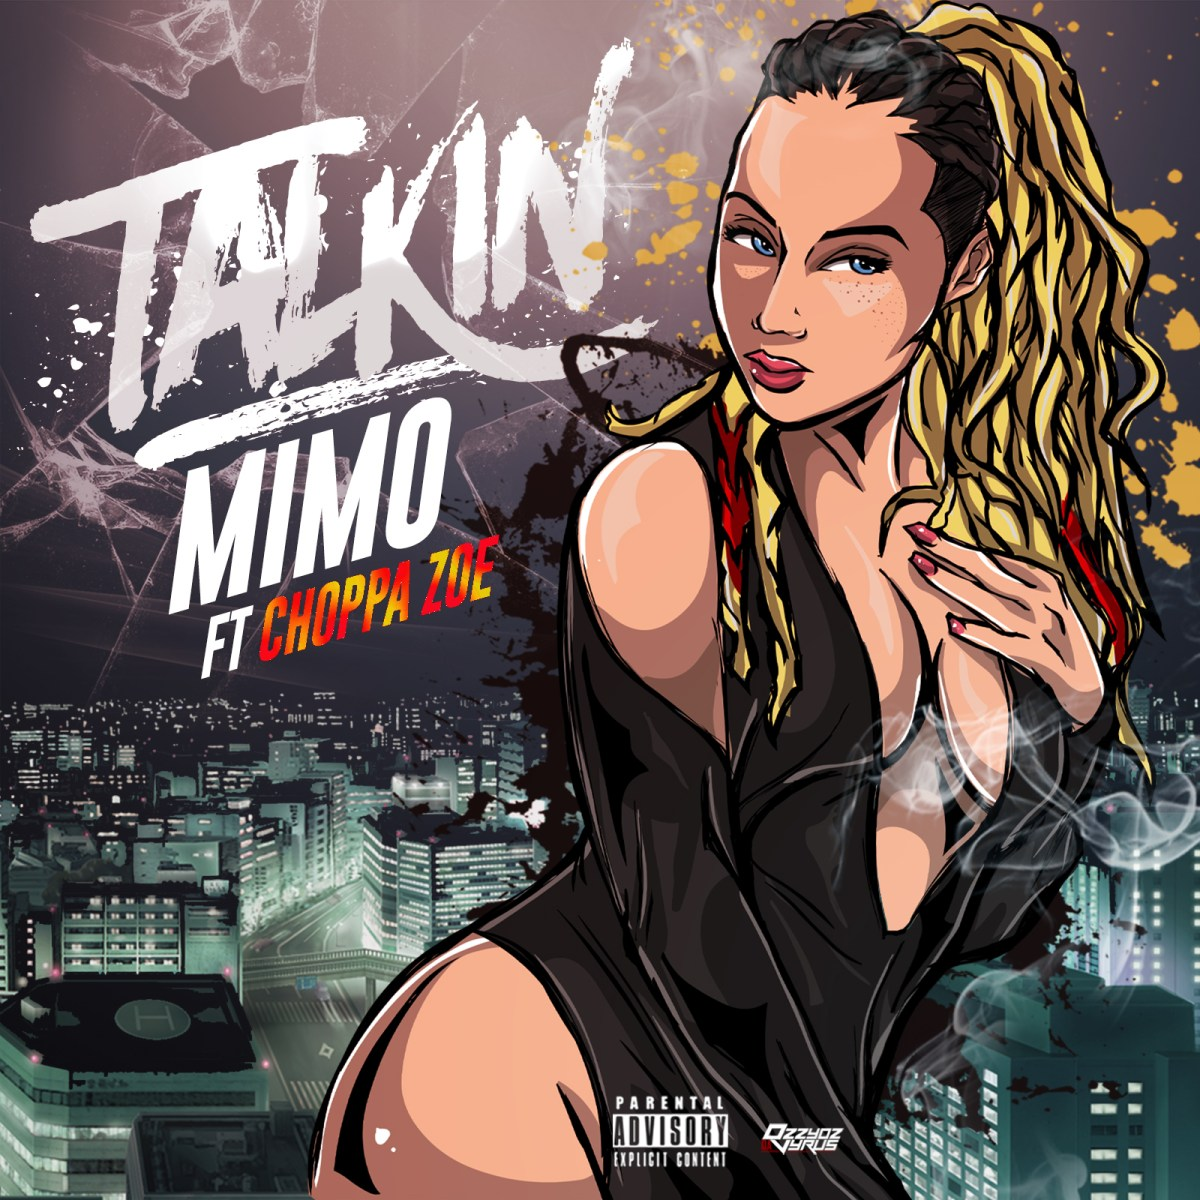 MiMo Moore - Talkin' ft. Choppa Zoe